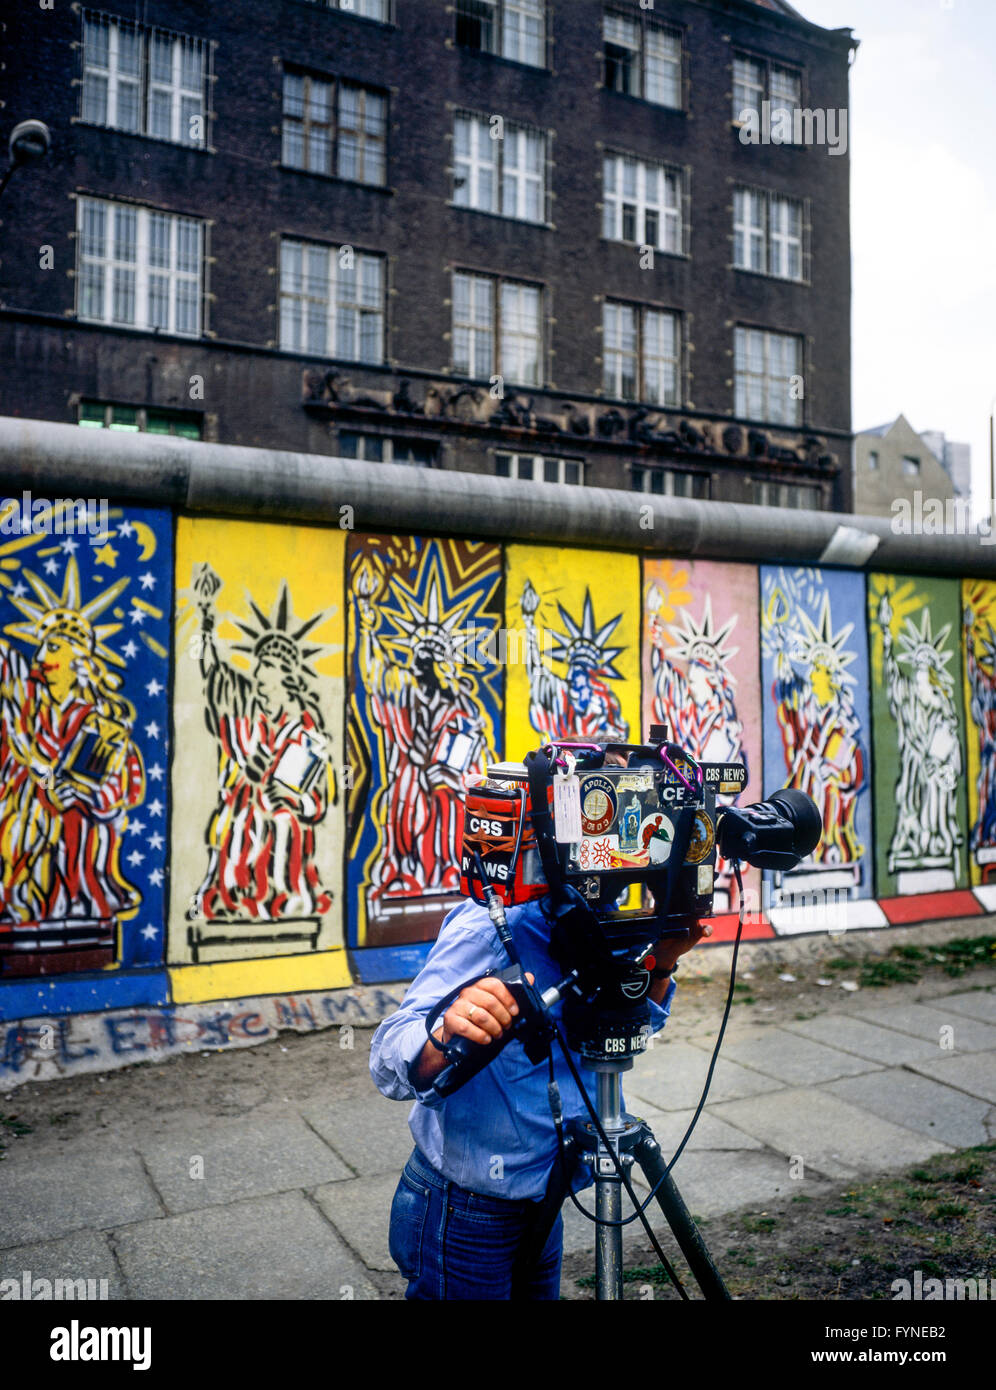 August 1986, CBS television cameraman, Berlin Wall decorated with Statue of Liberty frescos, West Berlin side, Germany, - Stock Image